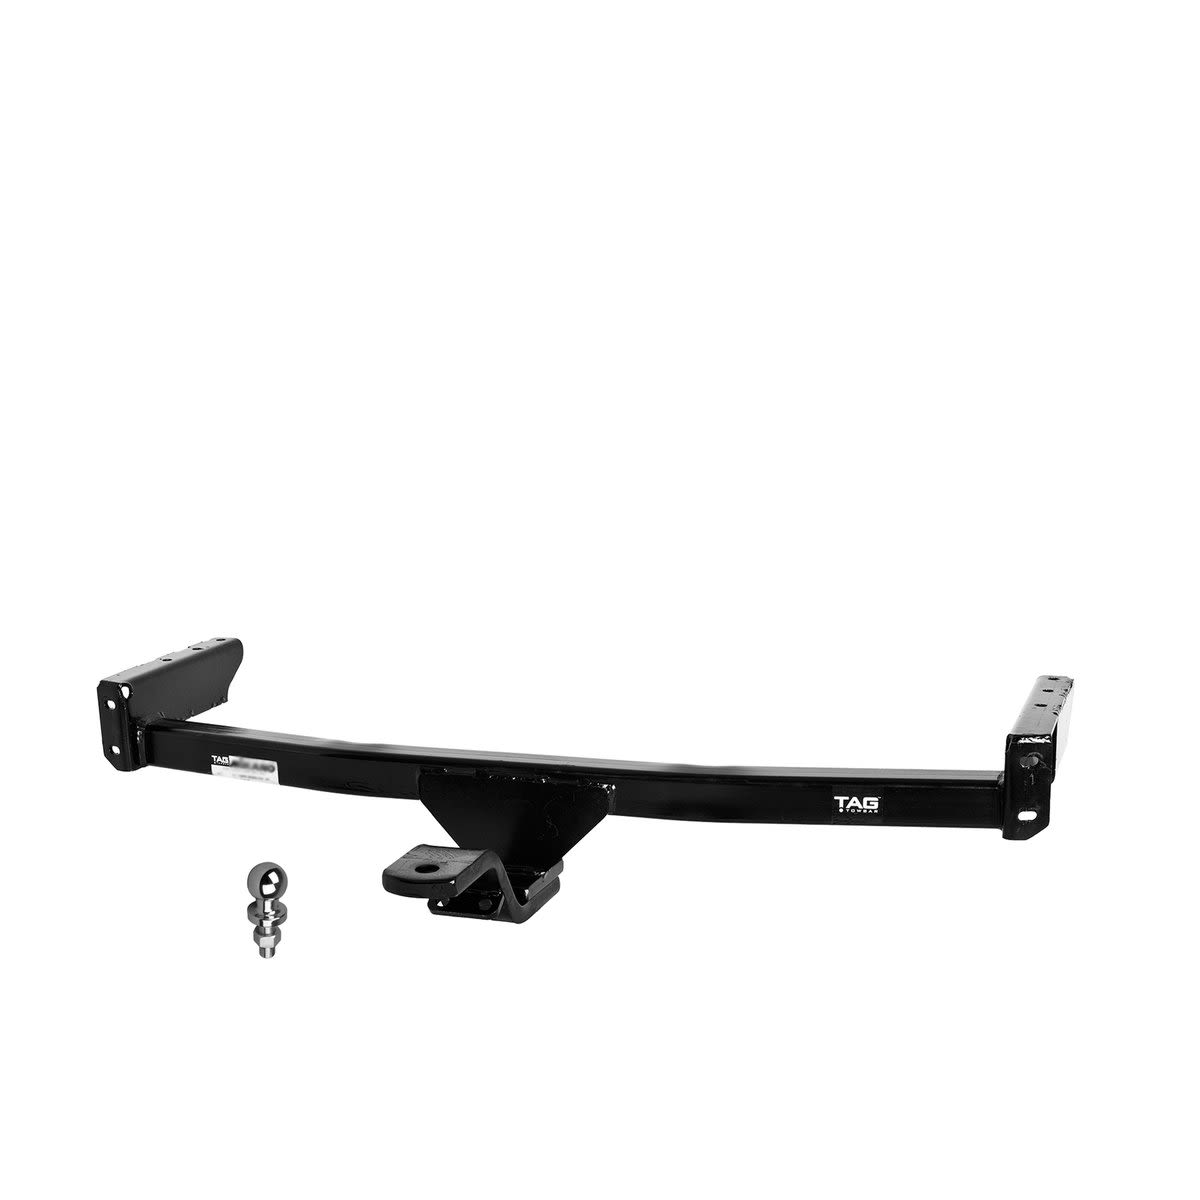 TAG Light Duty Towbar to suit Mazda 3 (03/2009 - 02/2014)